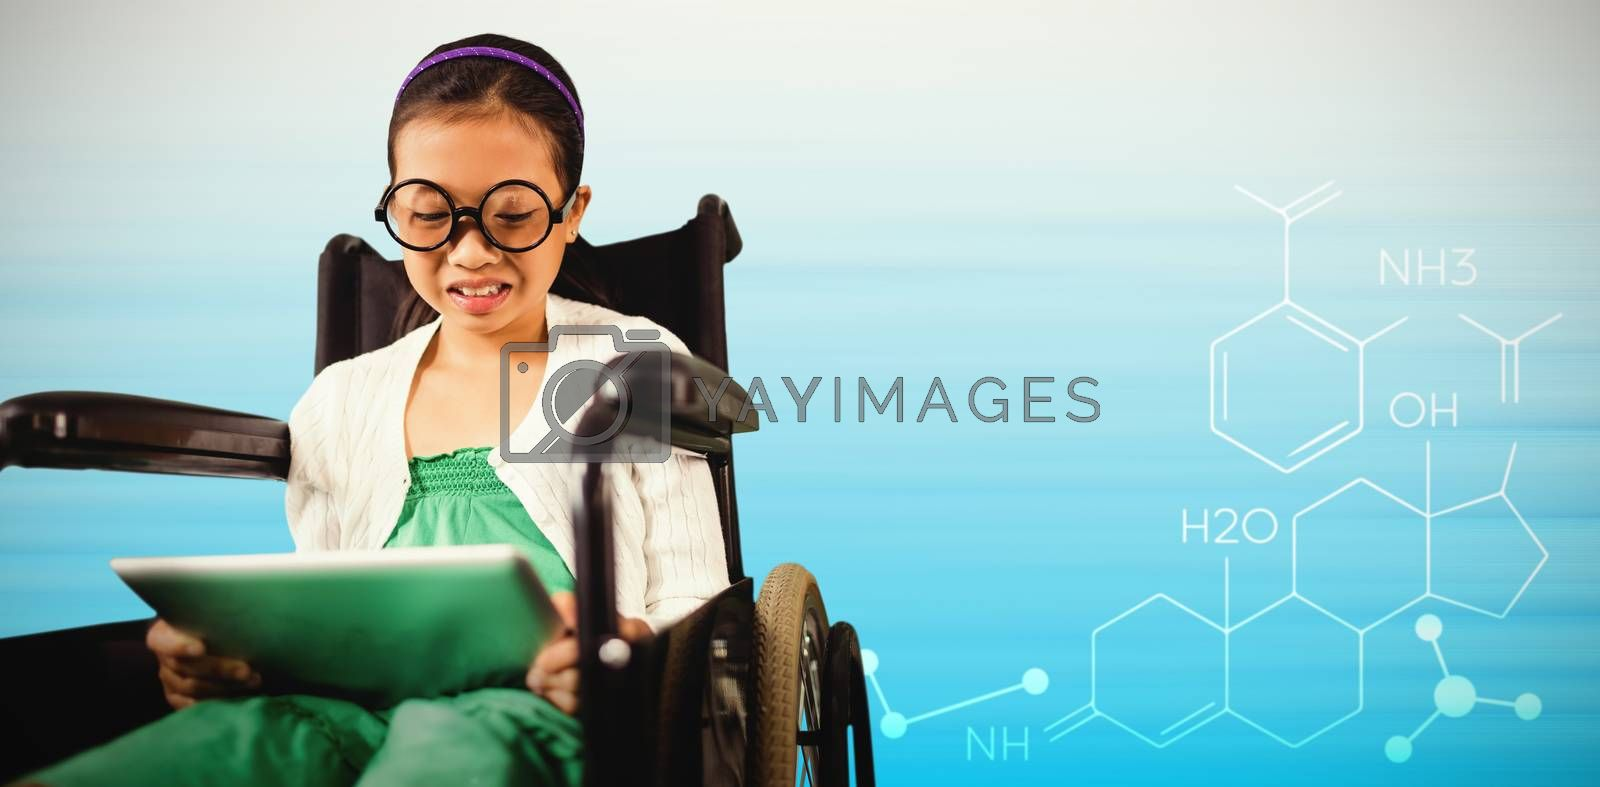 Composite image of young girl looking at digital tablet by Wavebreakmedia